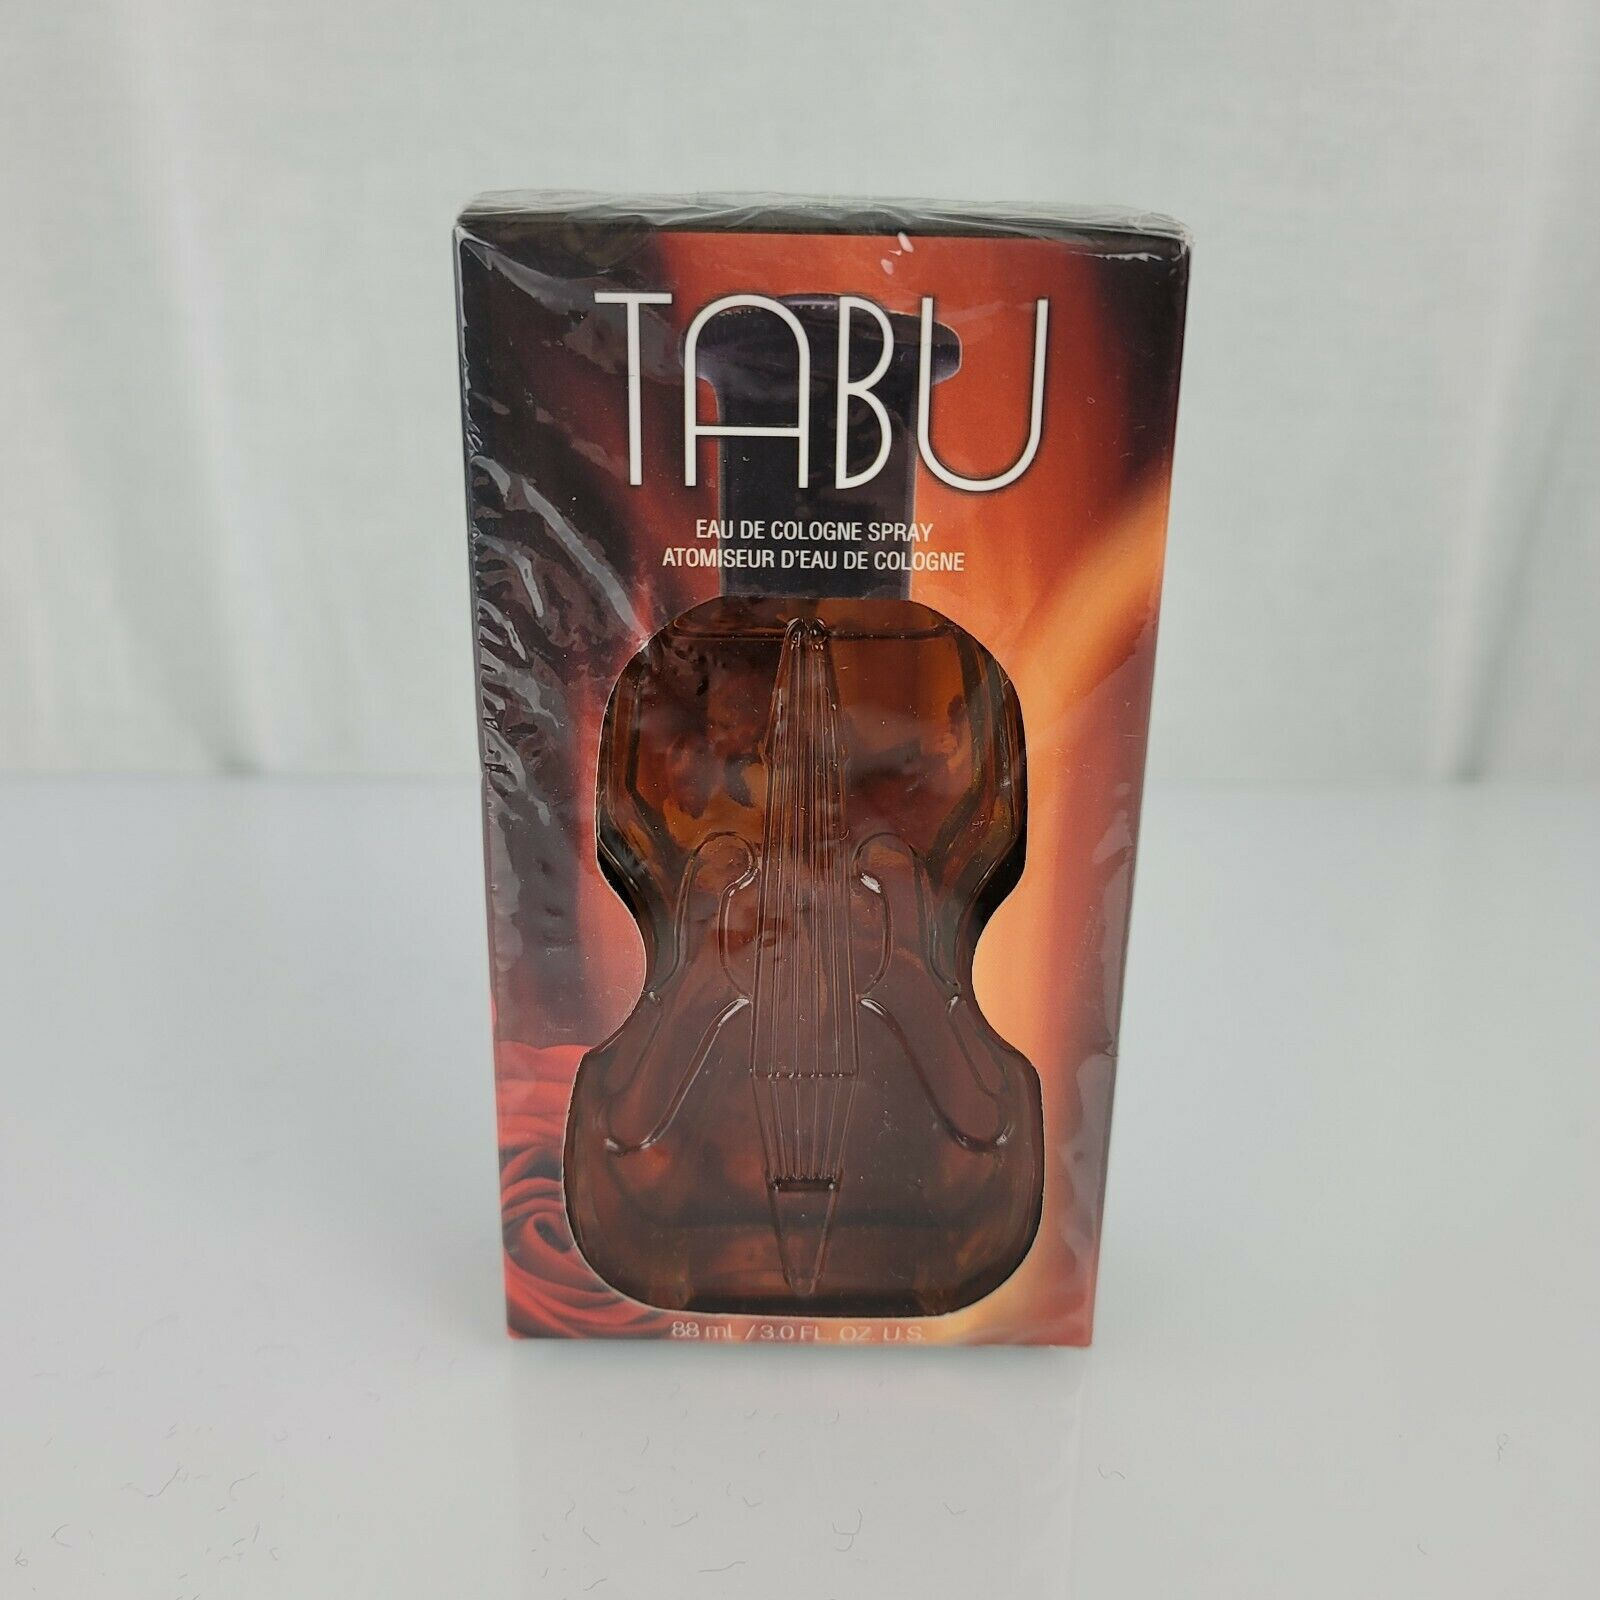 Primary image for Vintage Old Tabu Dana Eau De Cologne Spray 88 ml 3 fl oz Glass Violin Bottle NEW